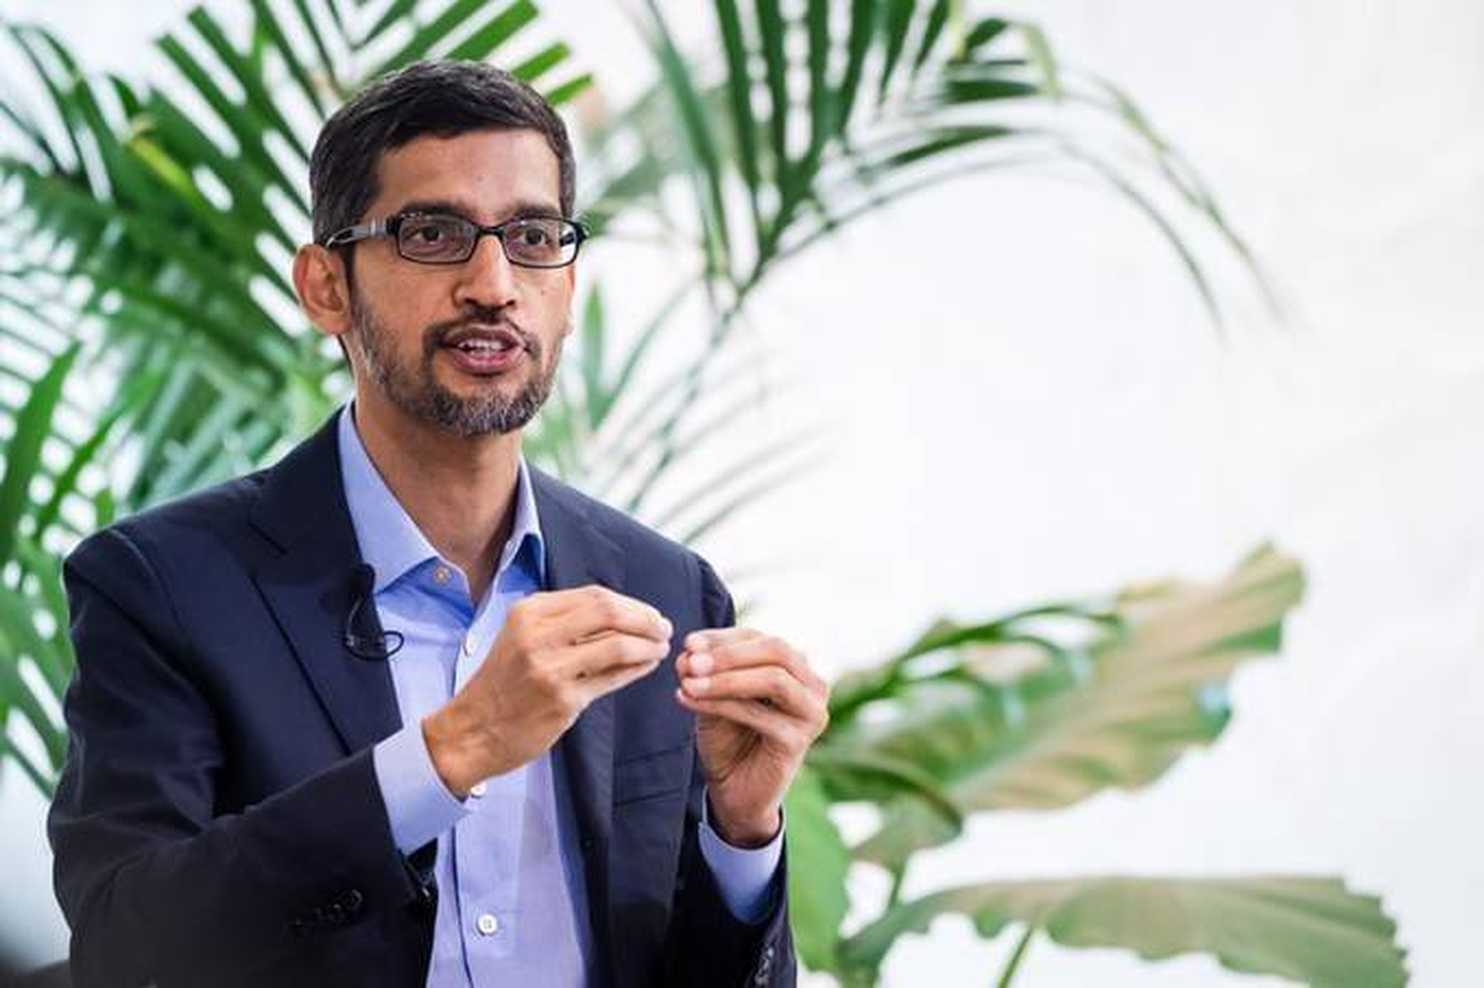 The Technology 202: Google's Sundar Pichai is the latest tech titan to embrace regulation